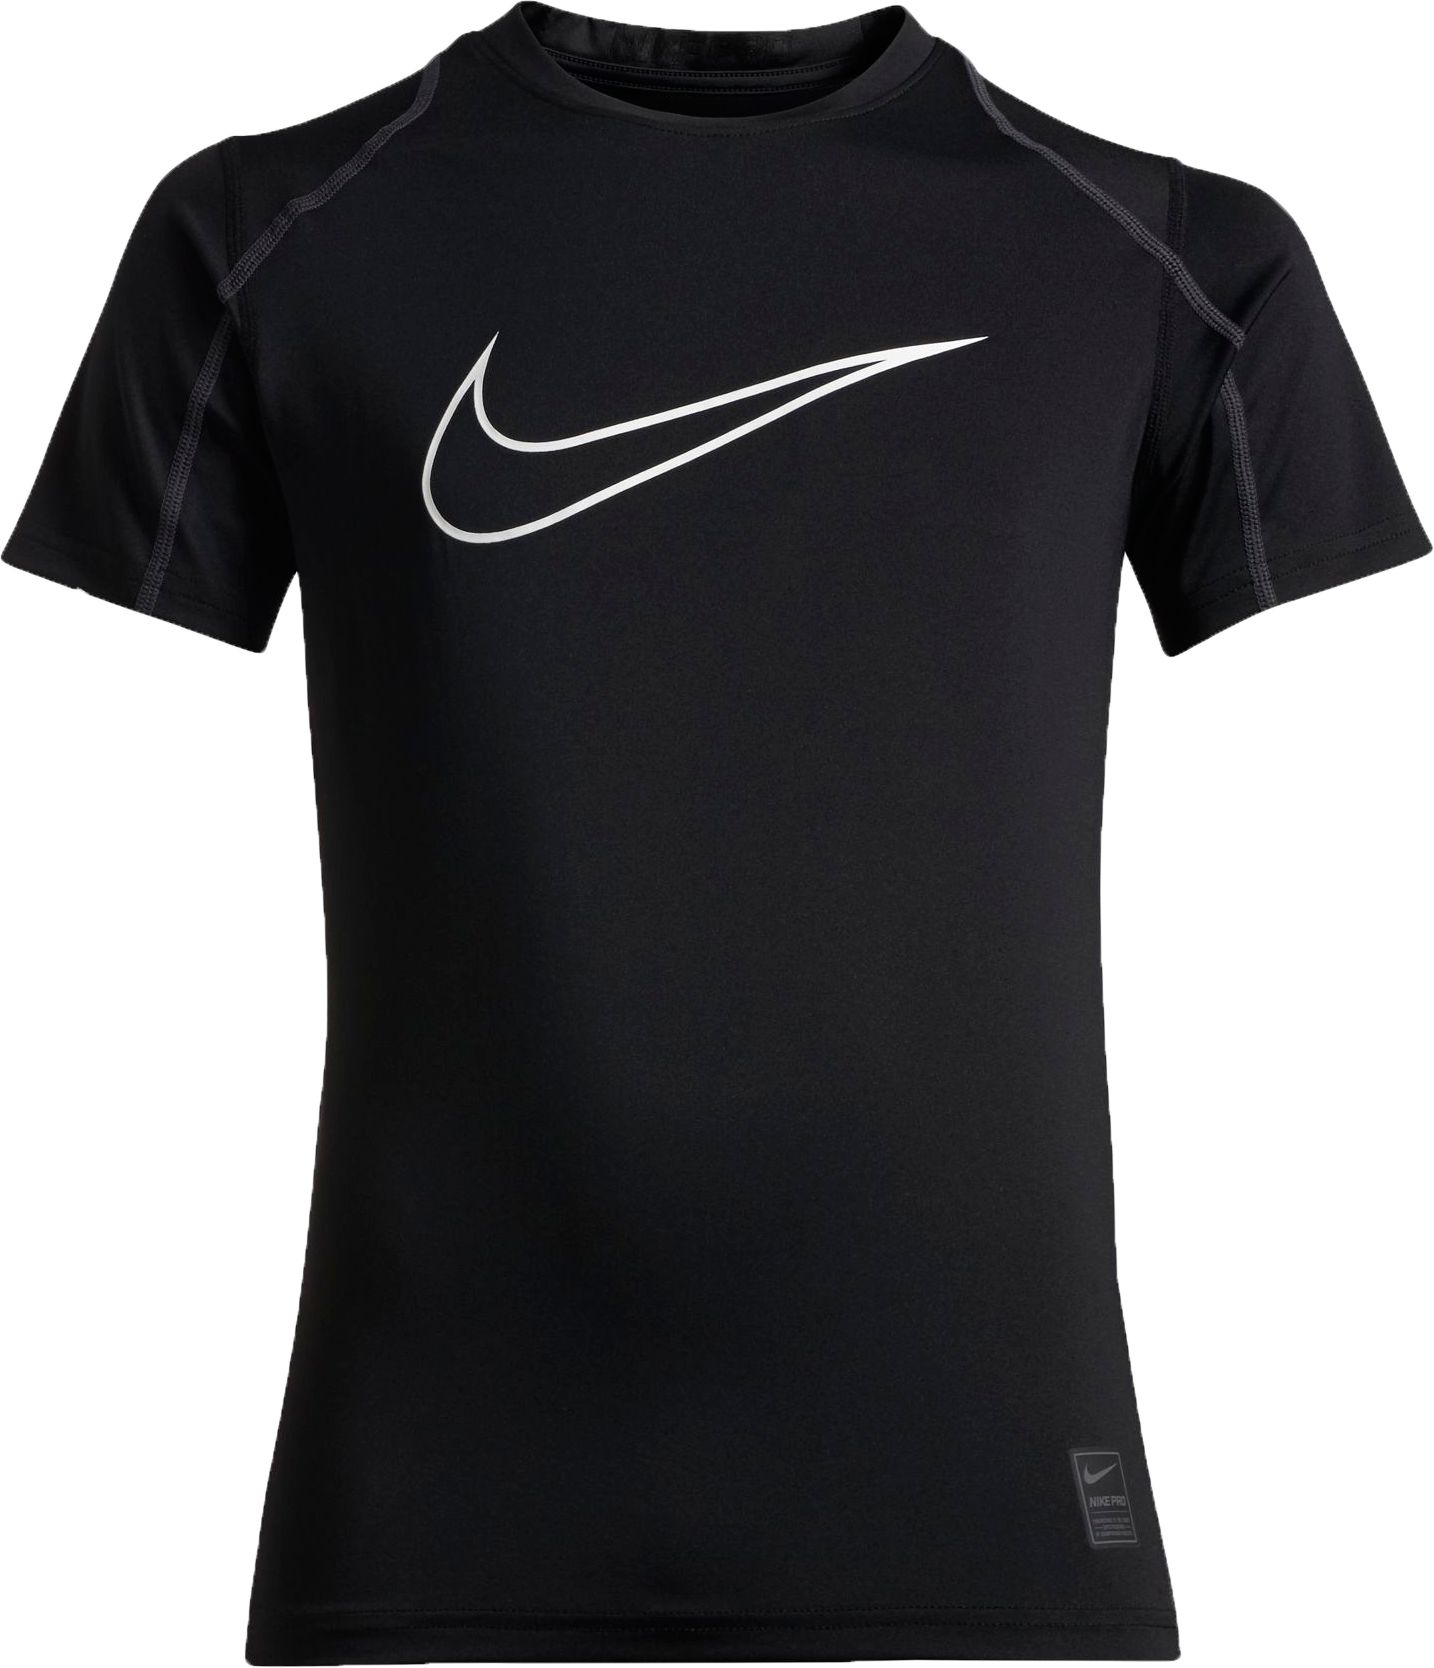 Nike Boys' Pro Cool HBR Fitted T-Shirt | DICK'S Sporting Goods